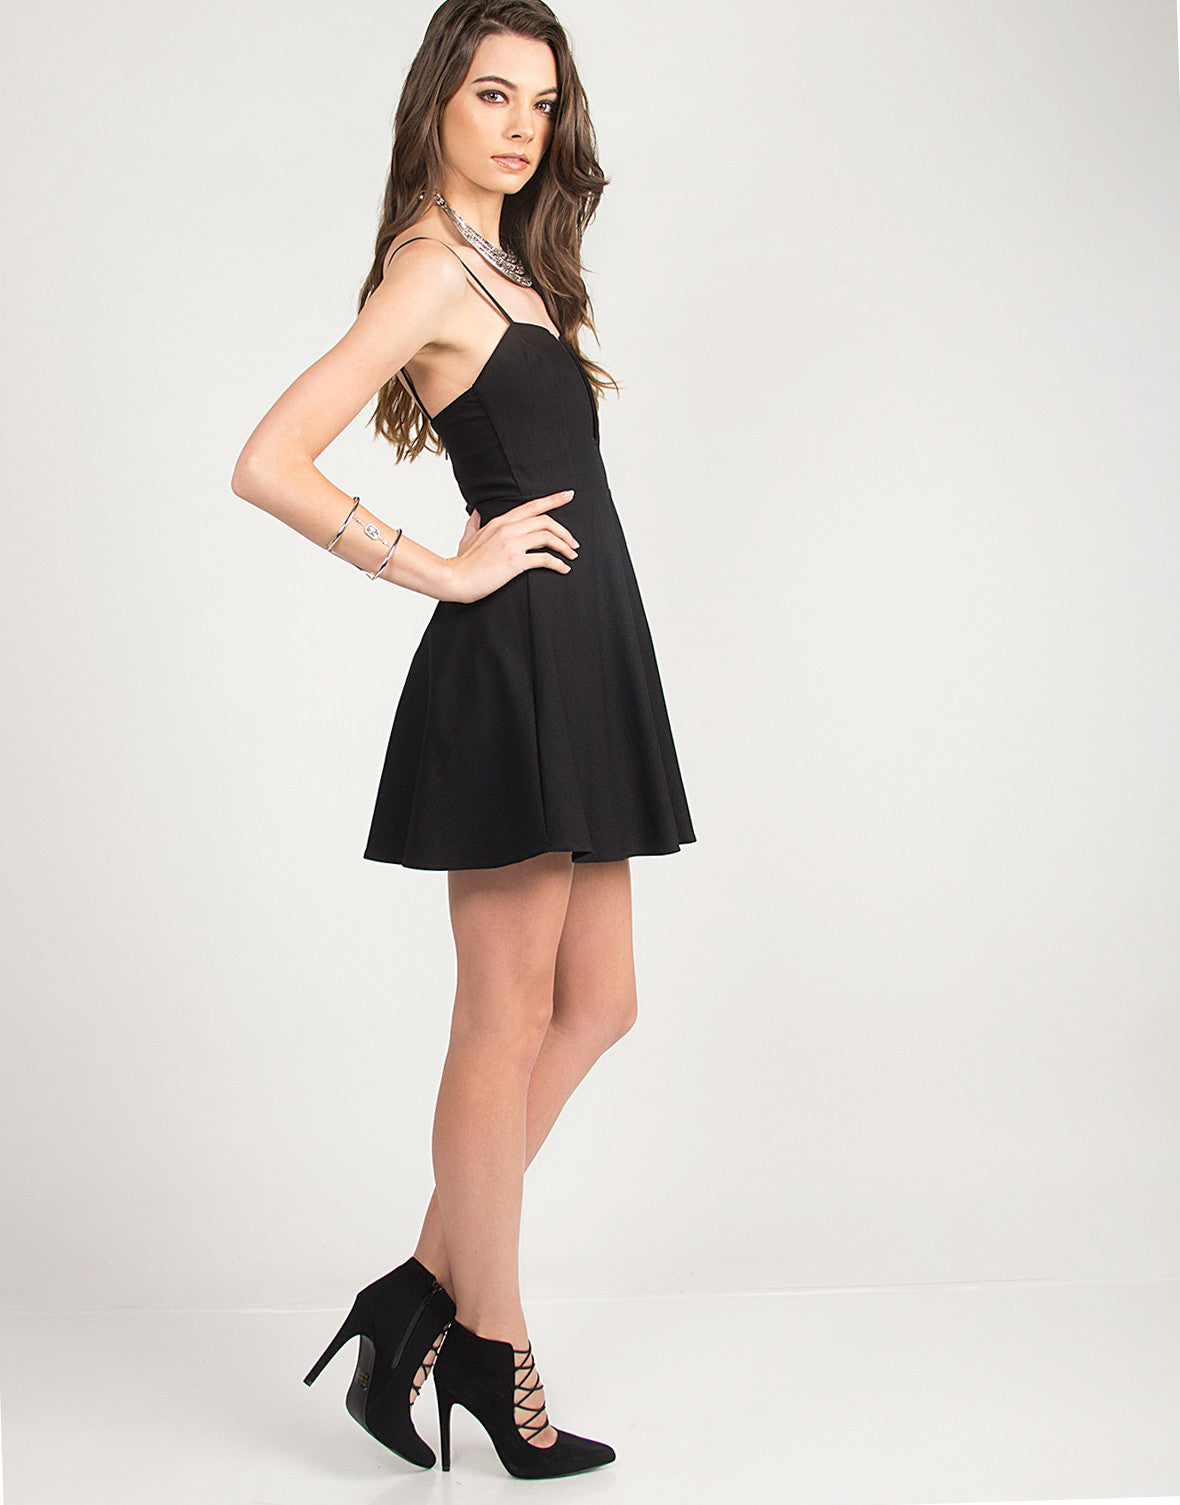 Fit and Flare Wire Dress - Black - Small - 2020AVE